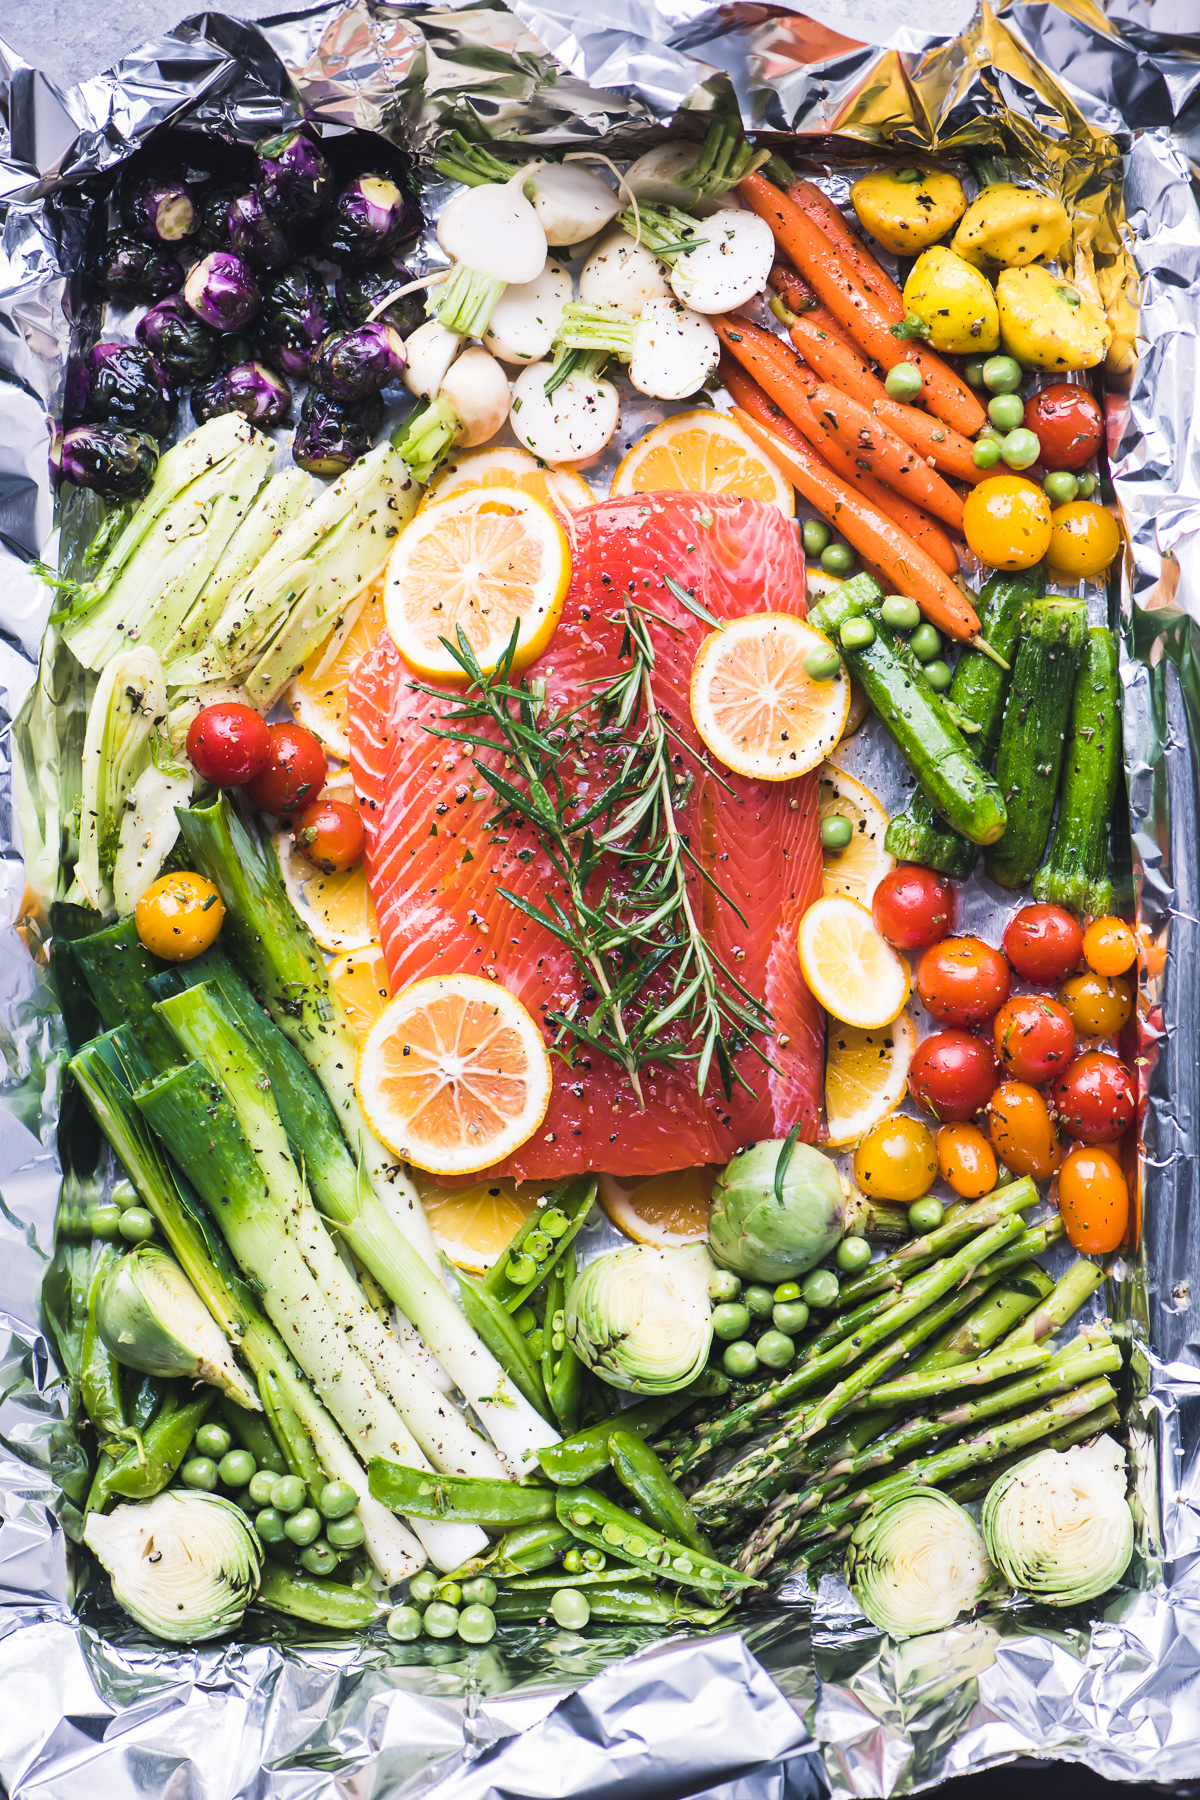 Sheet Pan Salmon Primavera on foil, ready for the oven